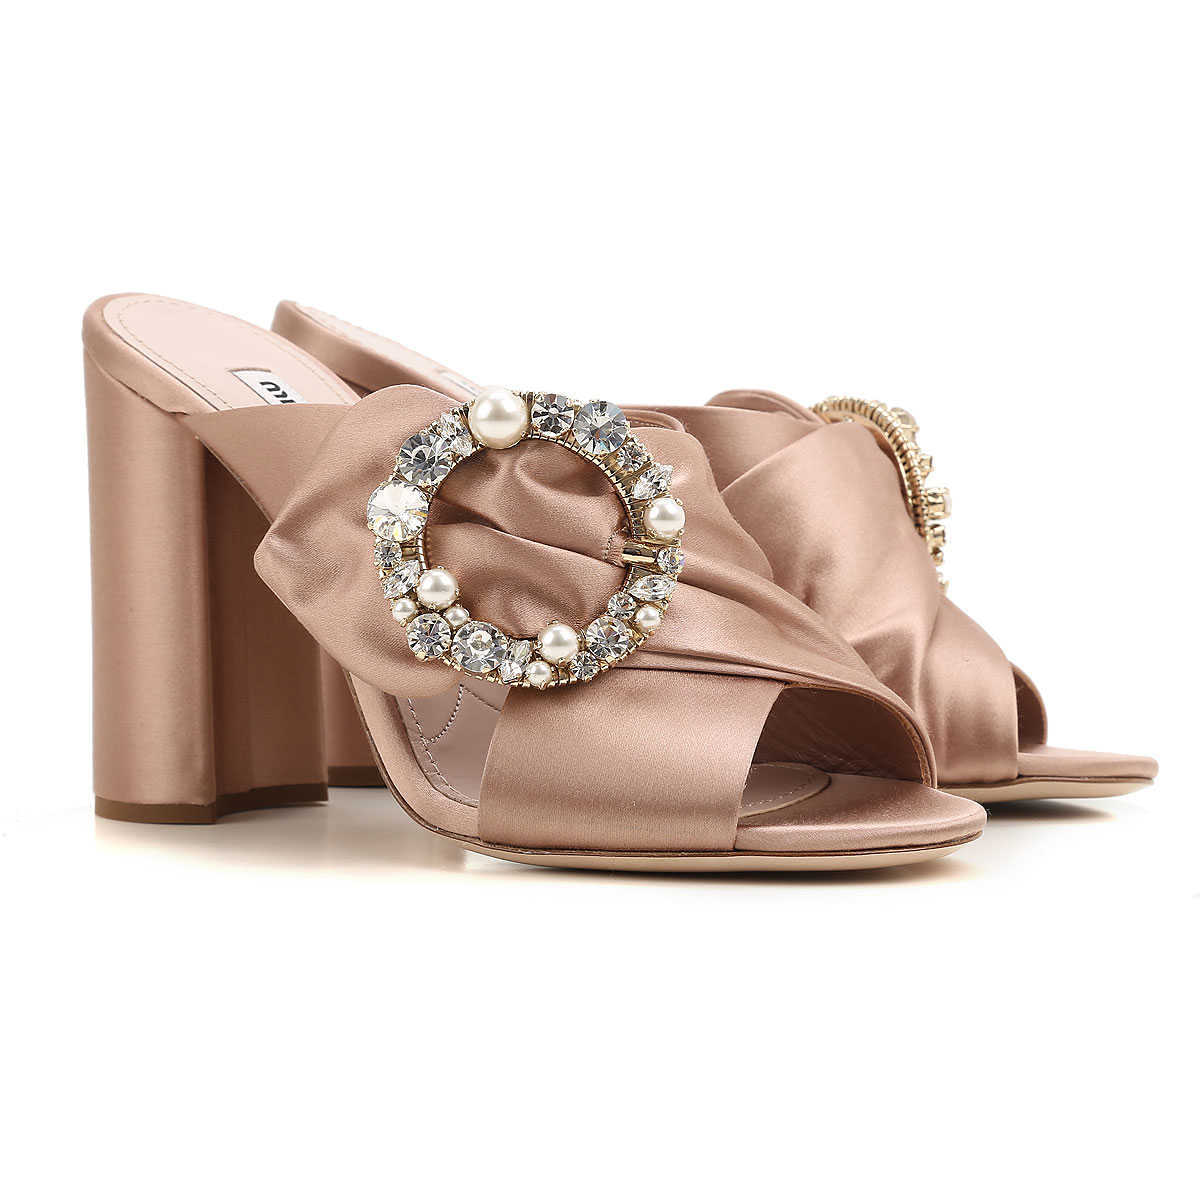 Miu Miu Sandals for Women On Sale in Outlet Nude UK - GOOFASH